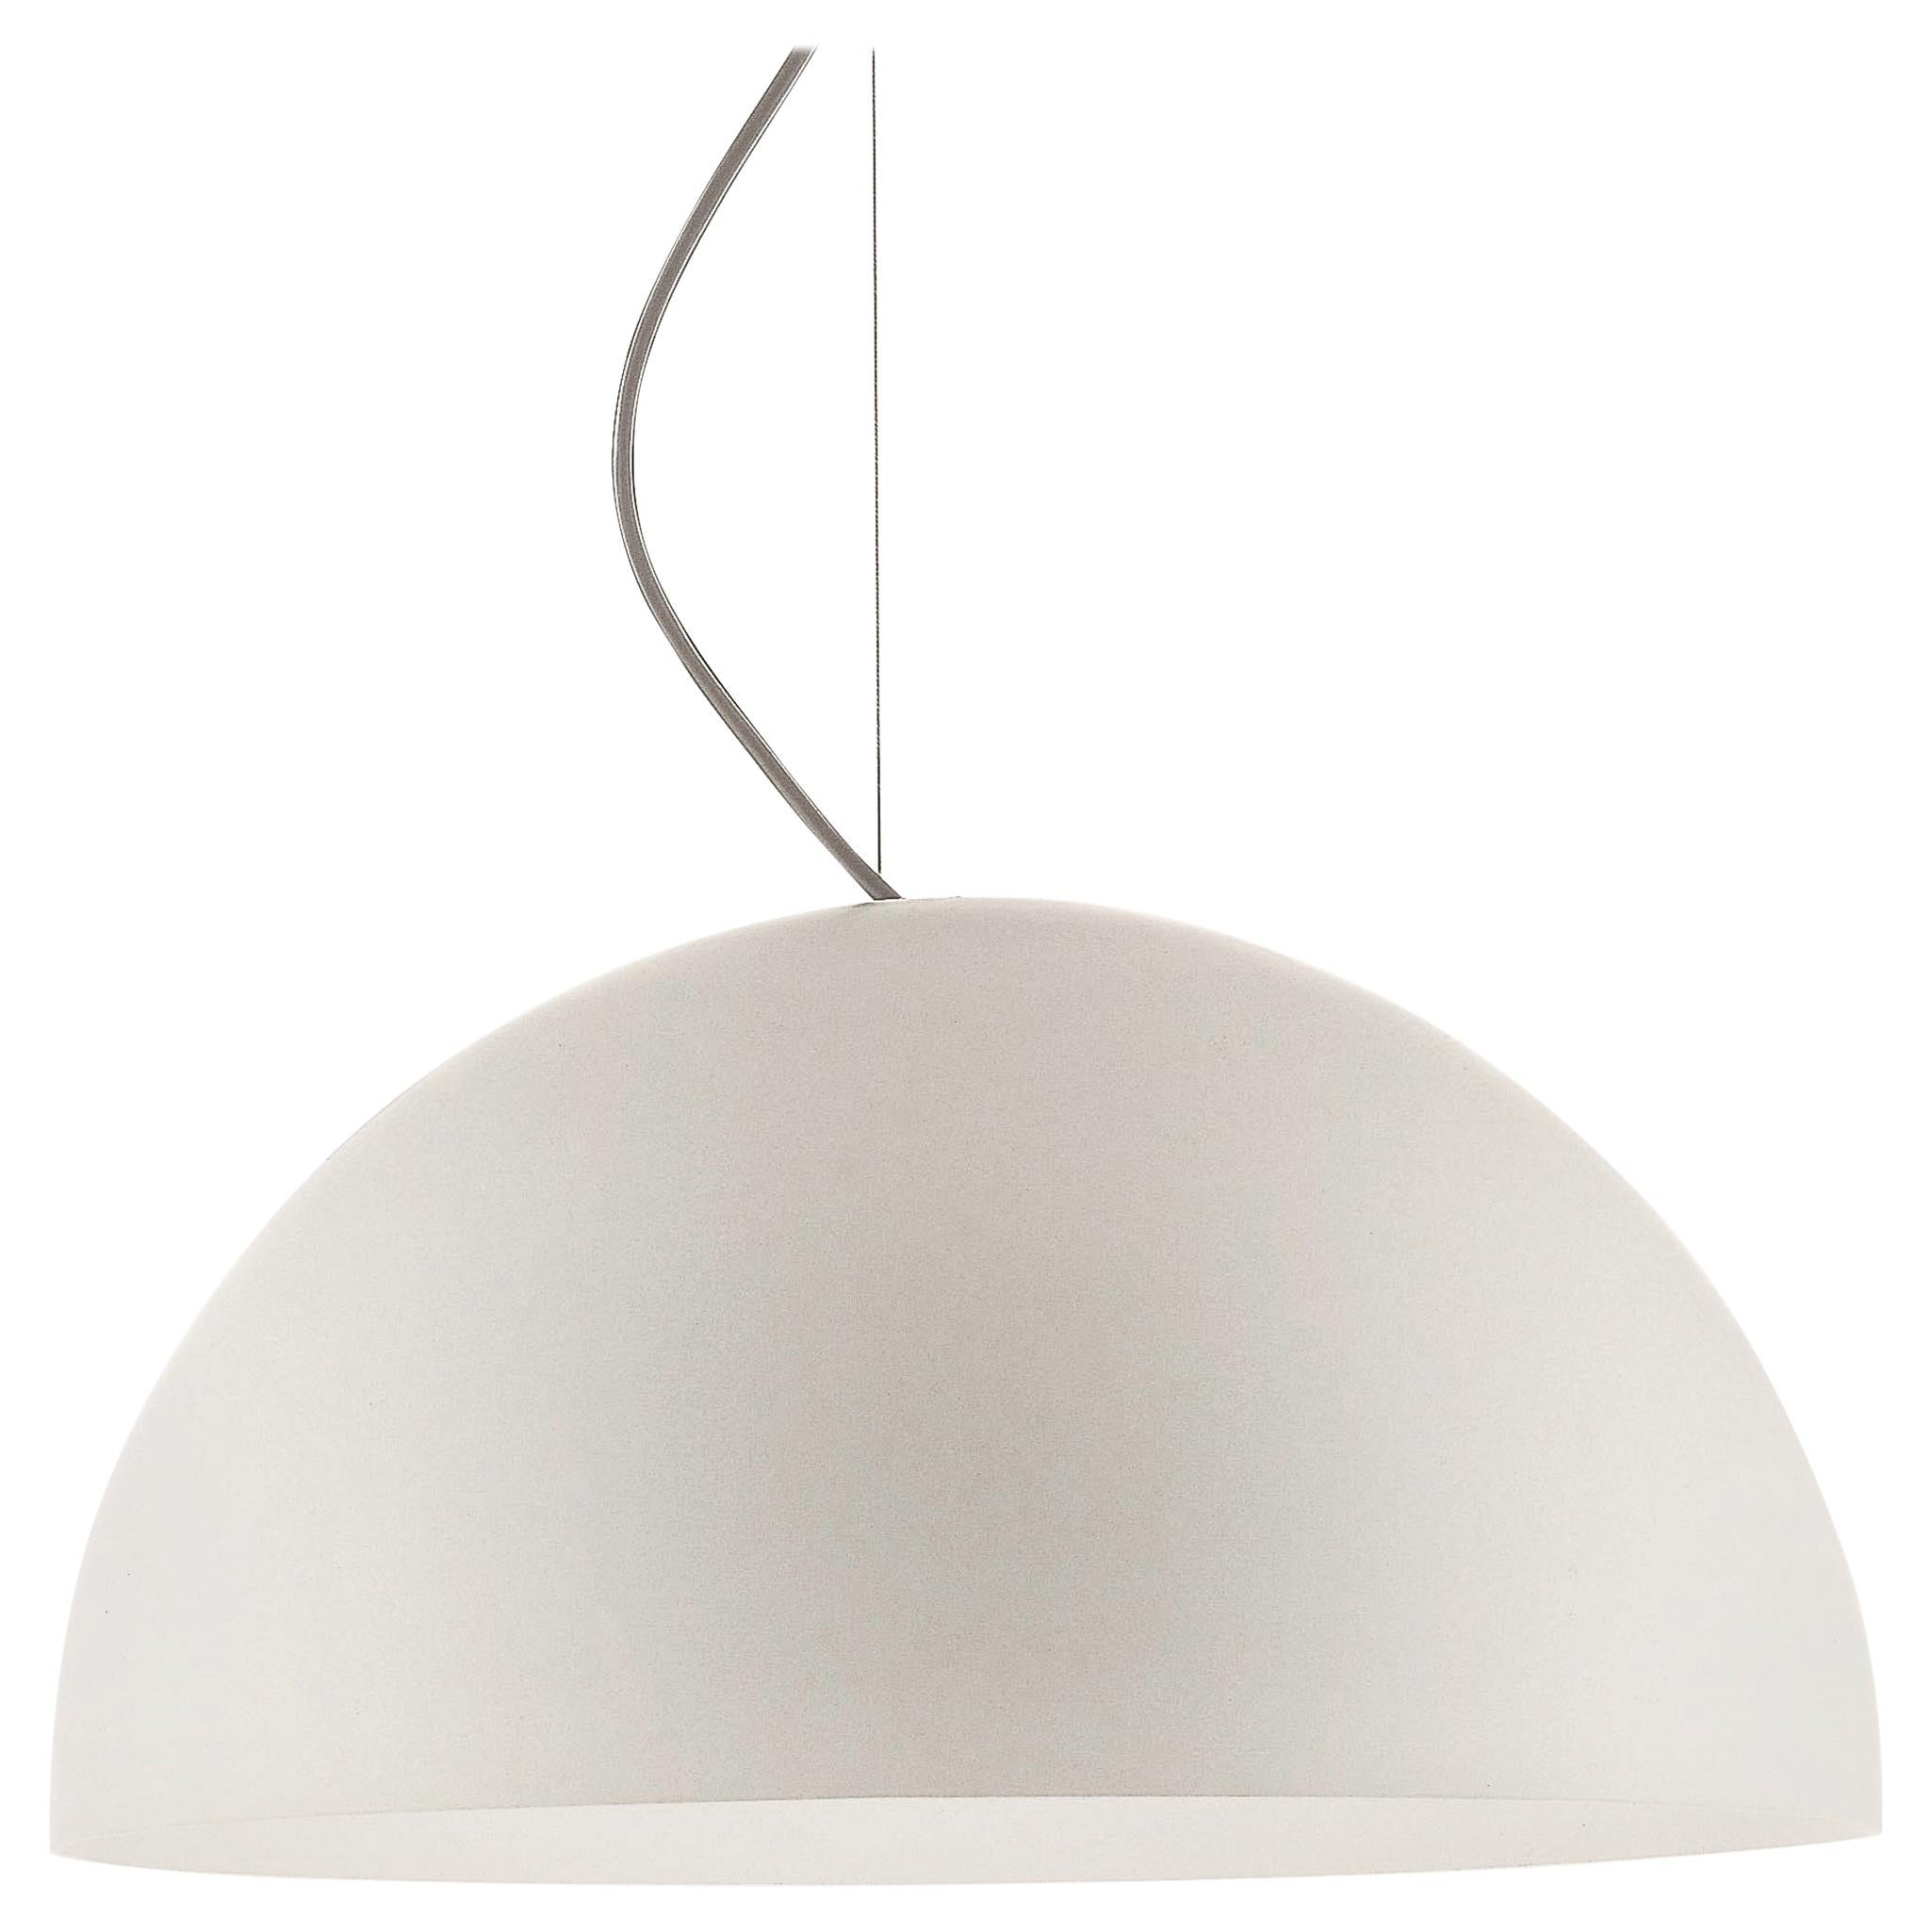 Vico Magistretti Suspension Lamp 'Sonora' Opaline Methacrylate by Oluce